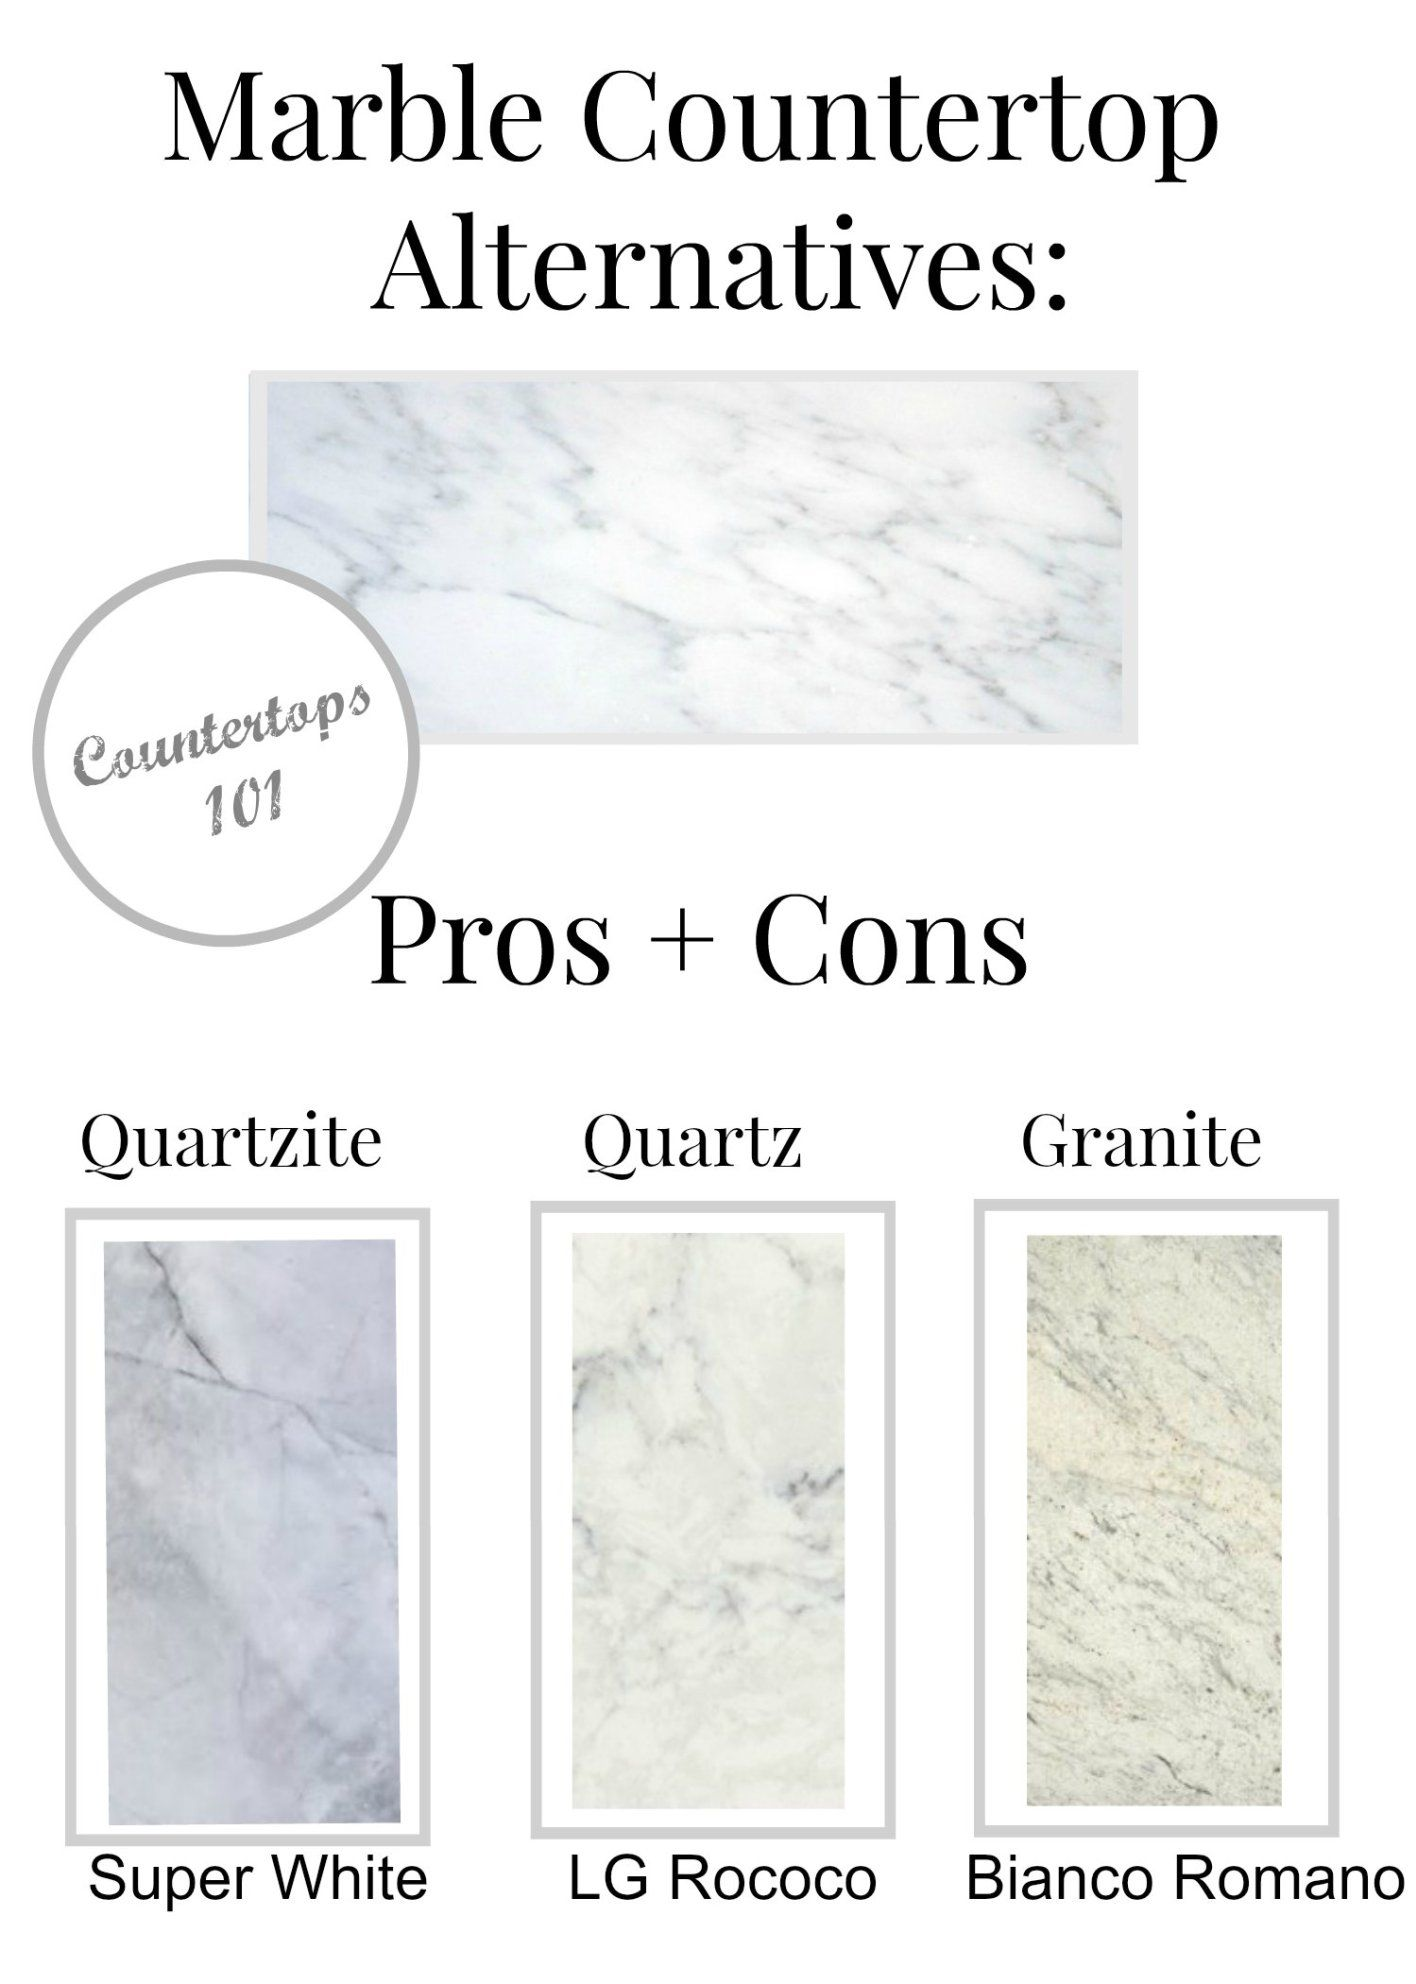 Marble Countertop Alternatives : Pros + Cons · Elizabeth Bixler Designs  Blog   Material Look Alikes For Carrara Marble For Your Countertops! Quartz  Super ...